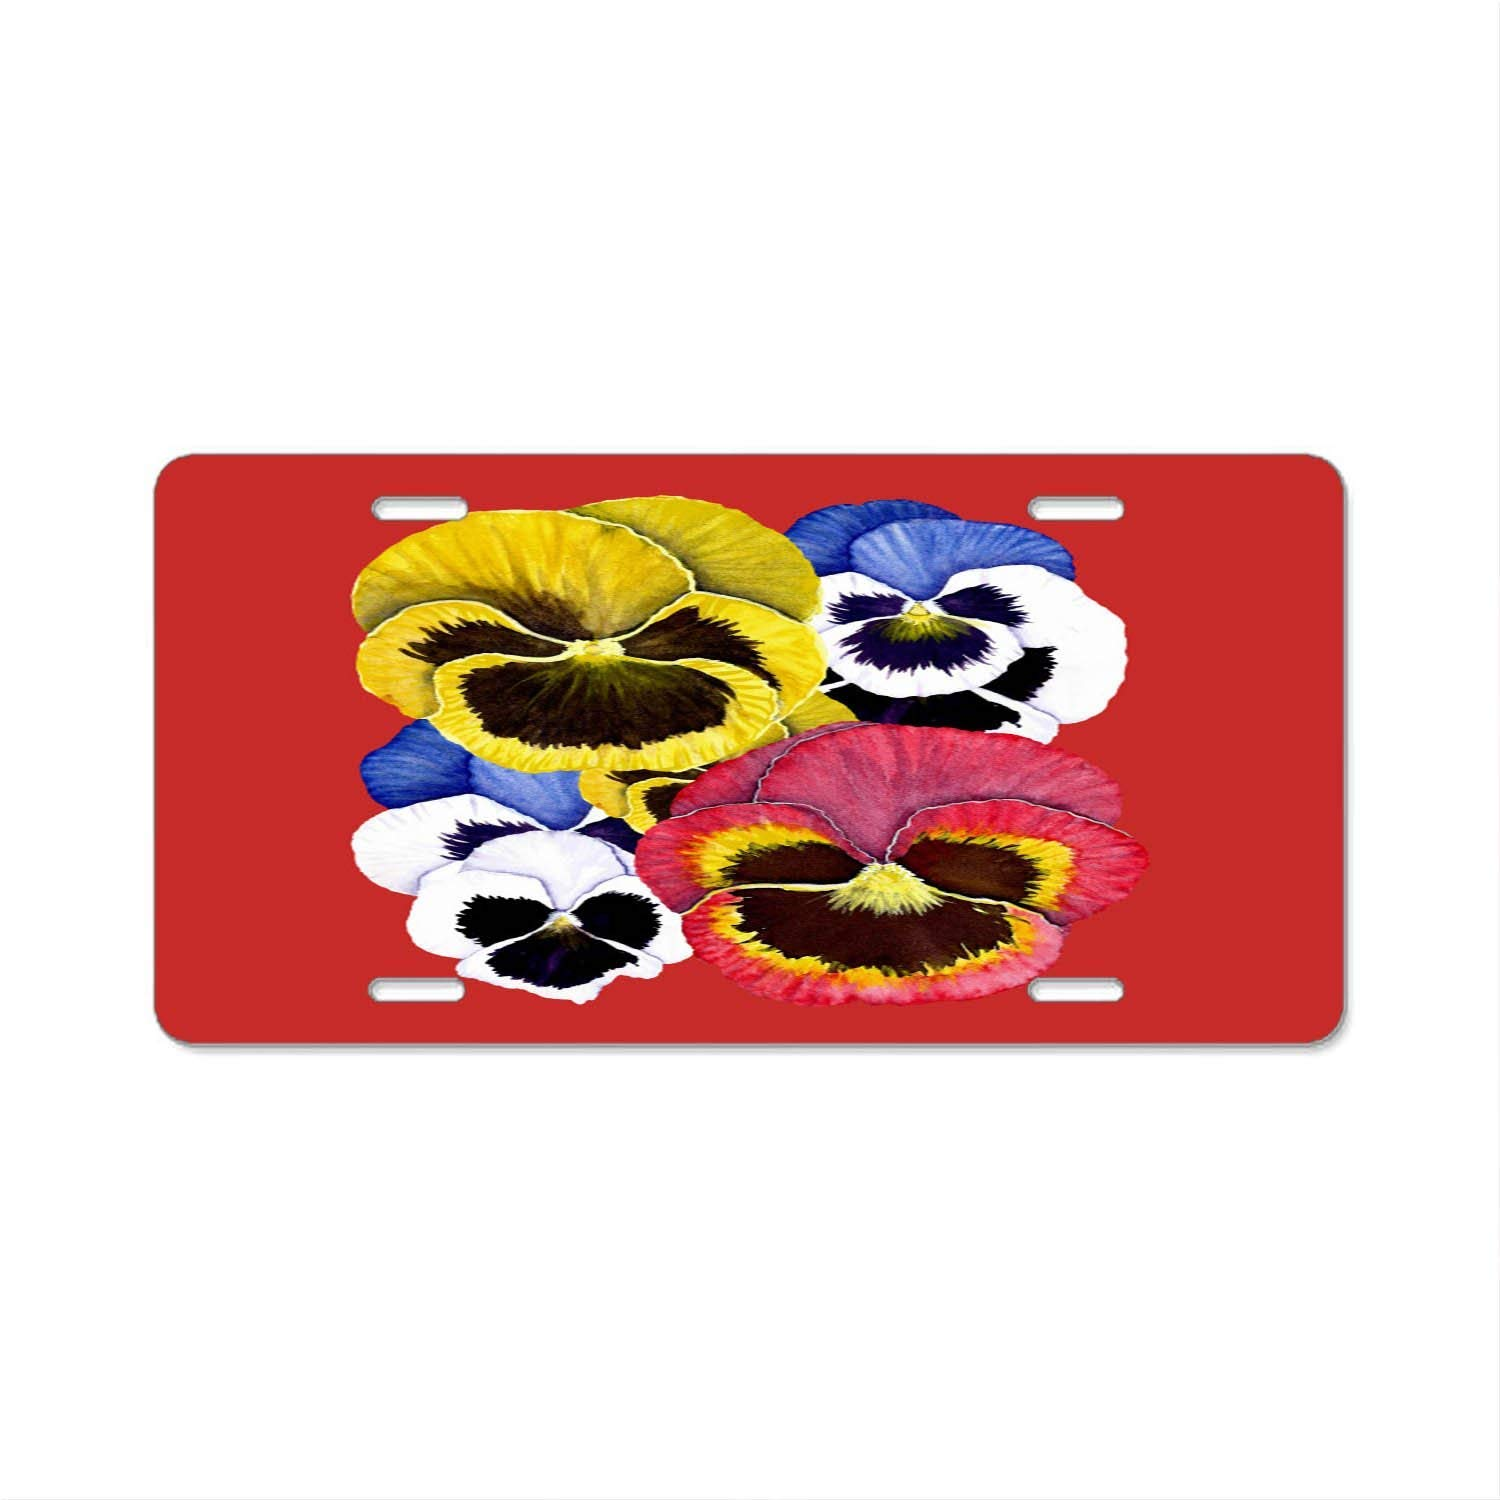 Red Rose Personalized Novelty Front License Plate Custom Decorative Car Tag